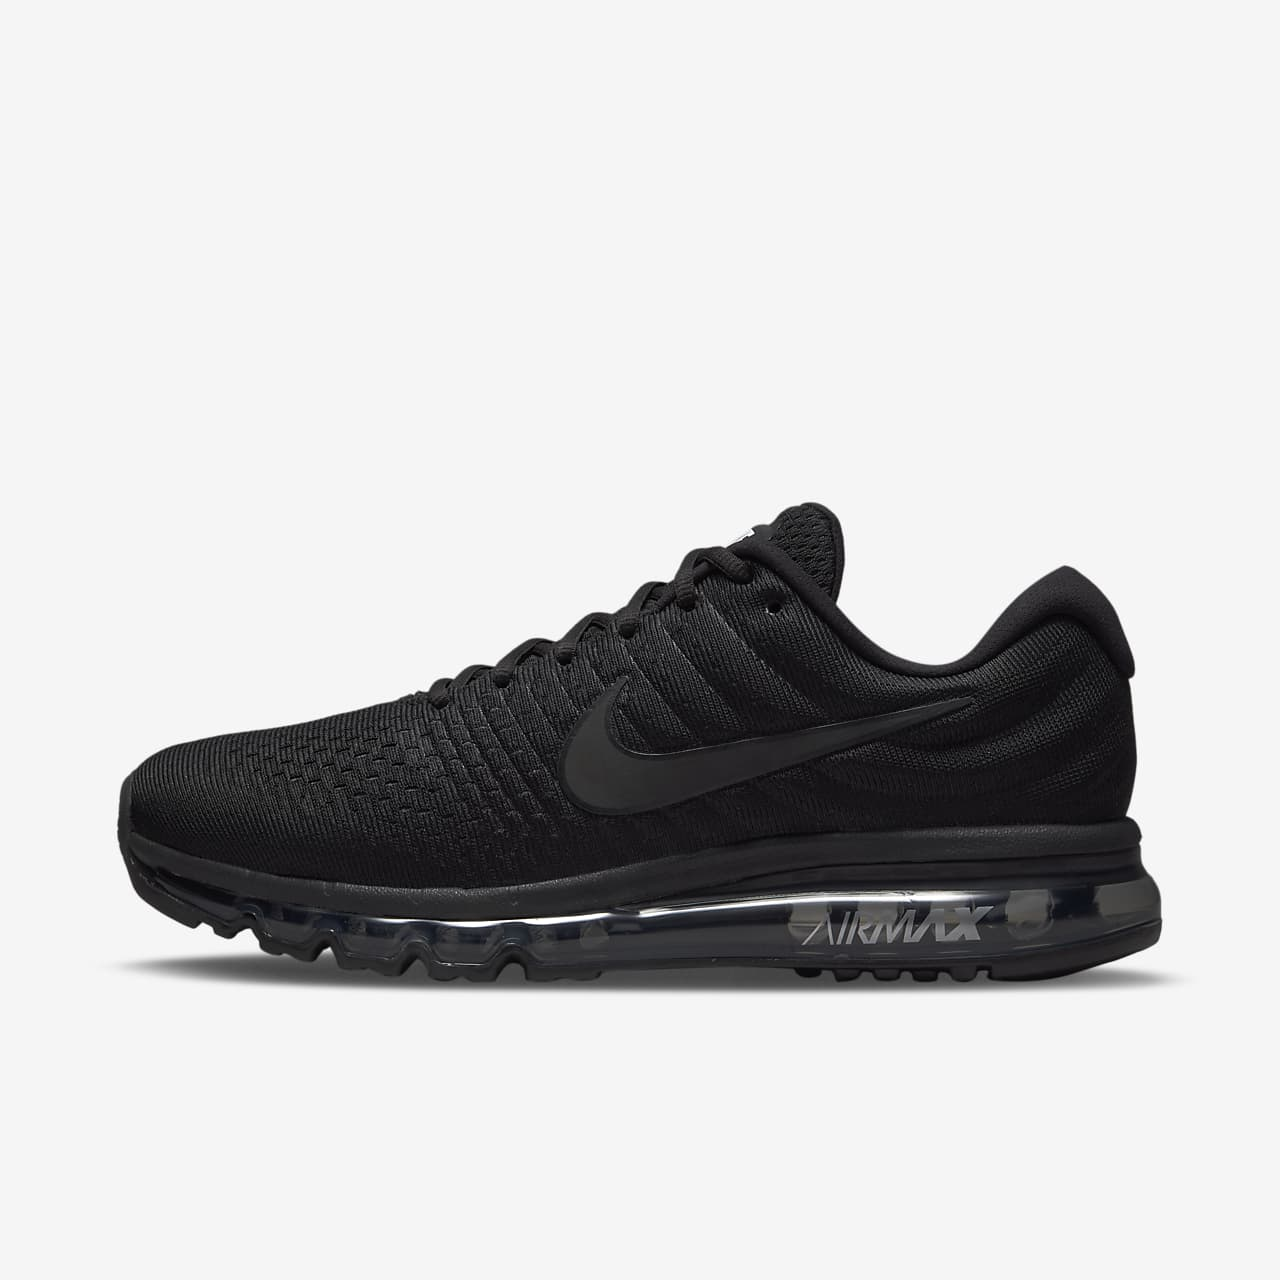 ... Chaussure de running Nike Air Max 2017 pour Homme